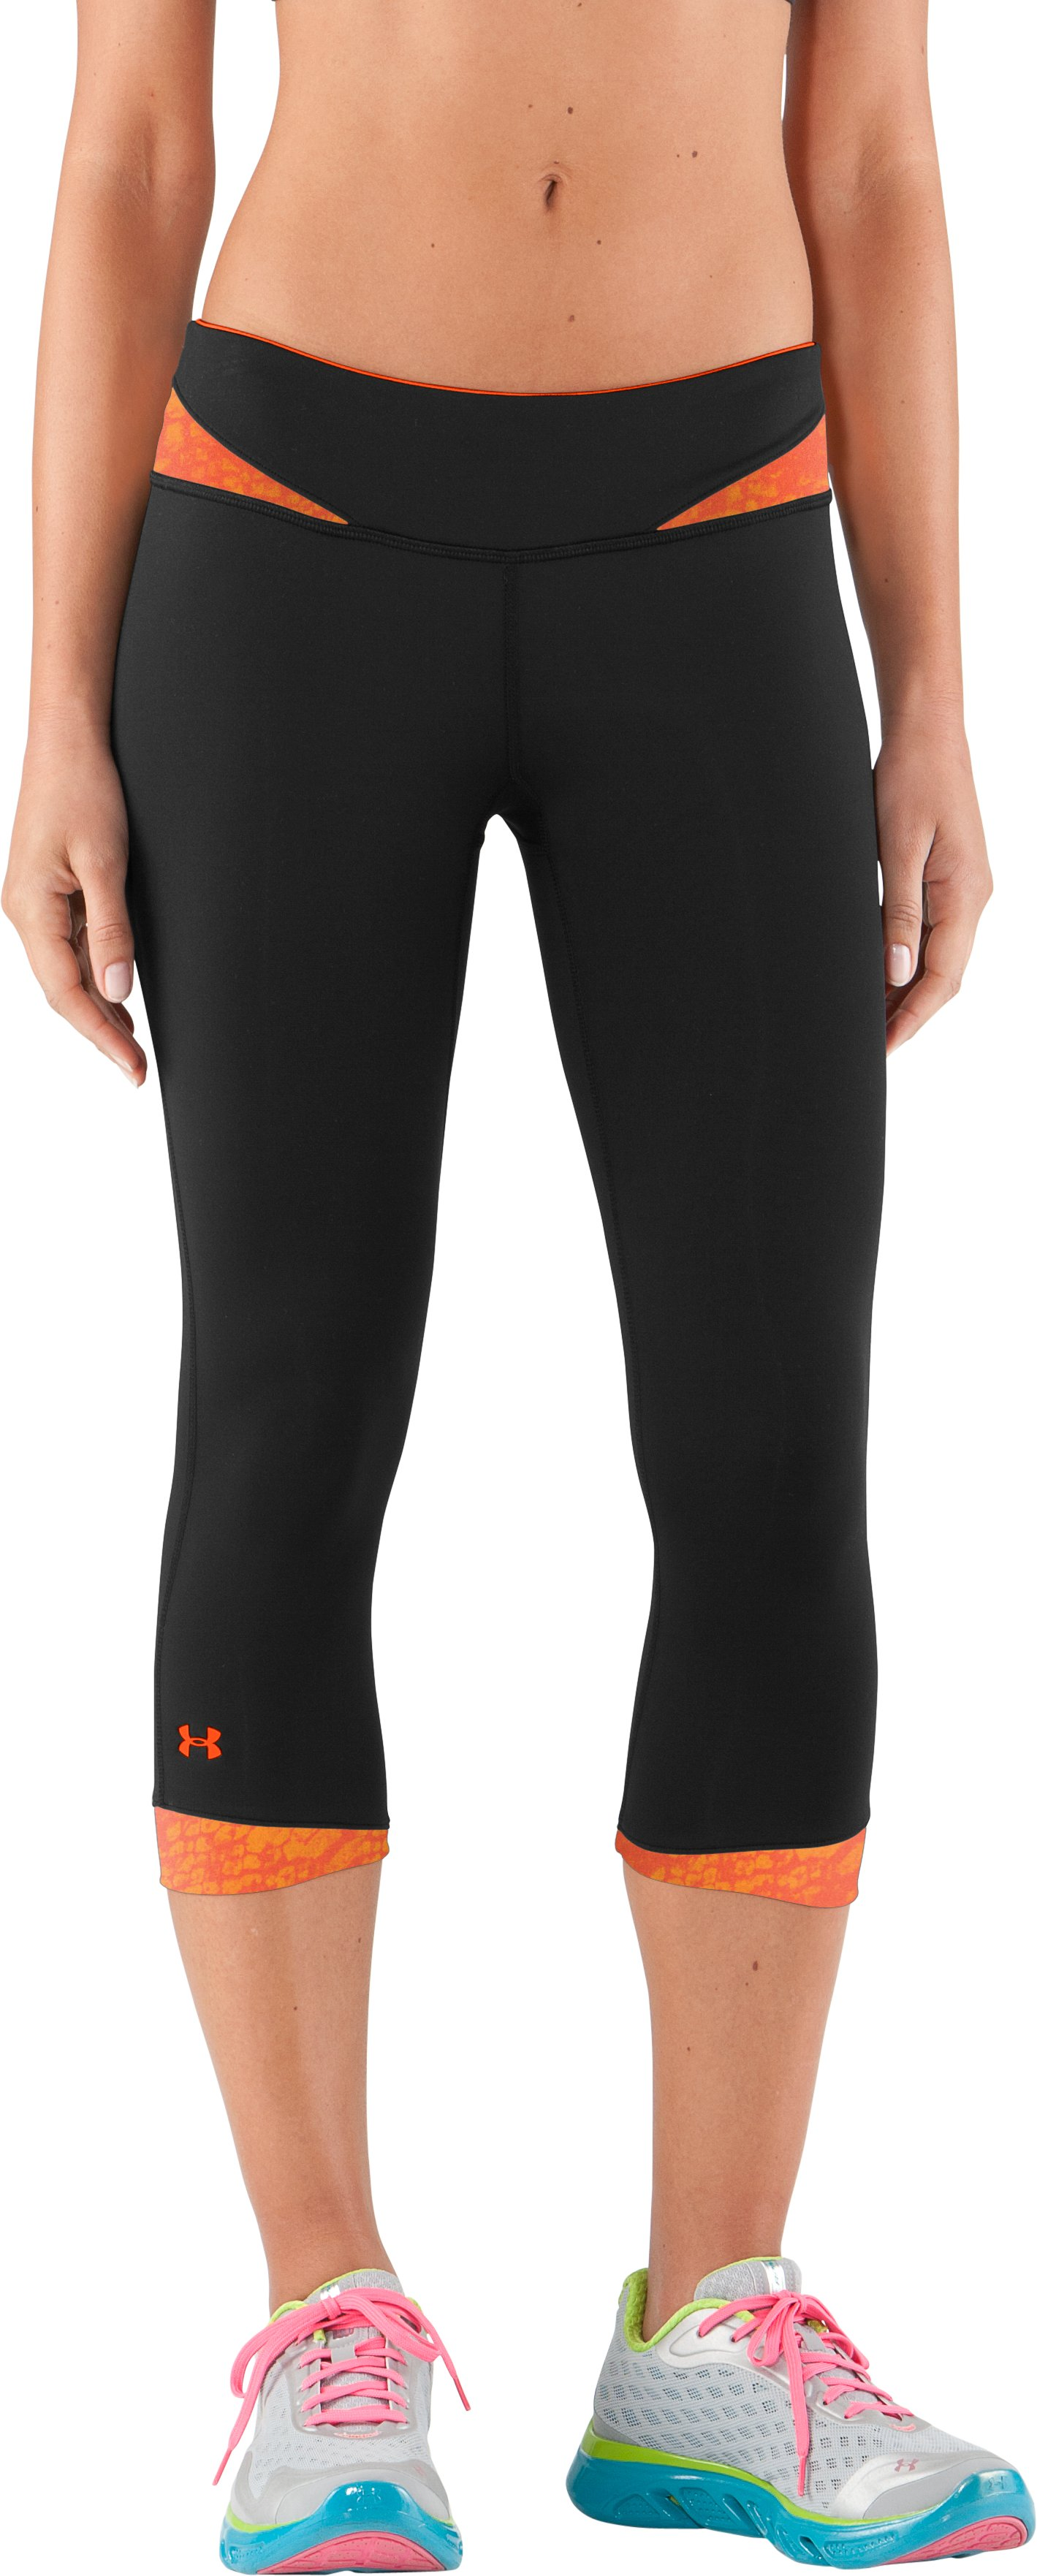 Women's HeatGear® Sonic All-In-One Capri test, Black